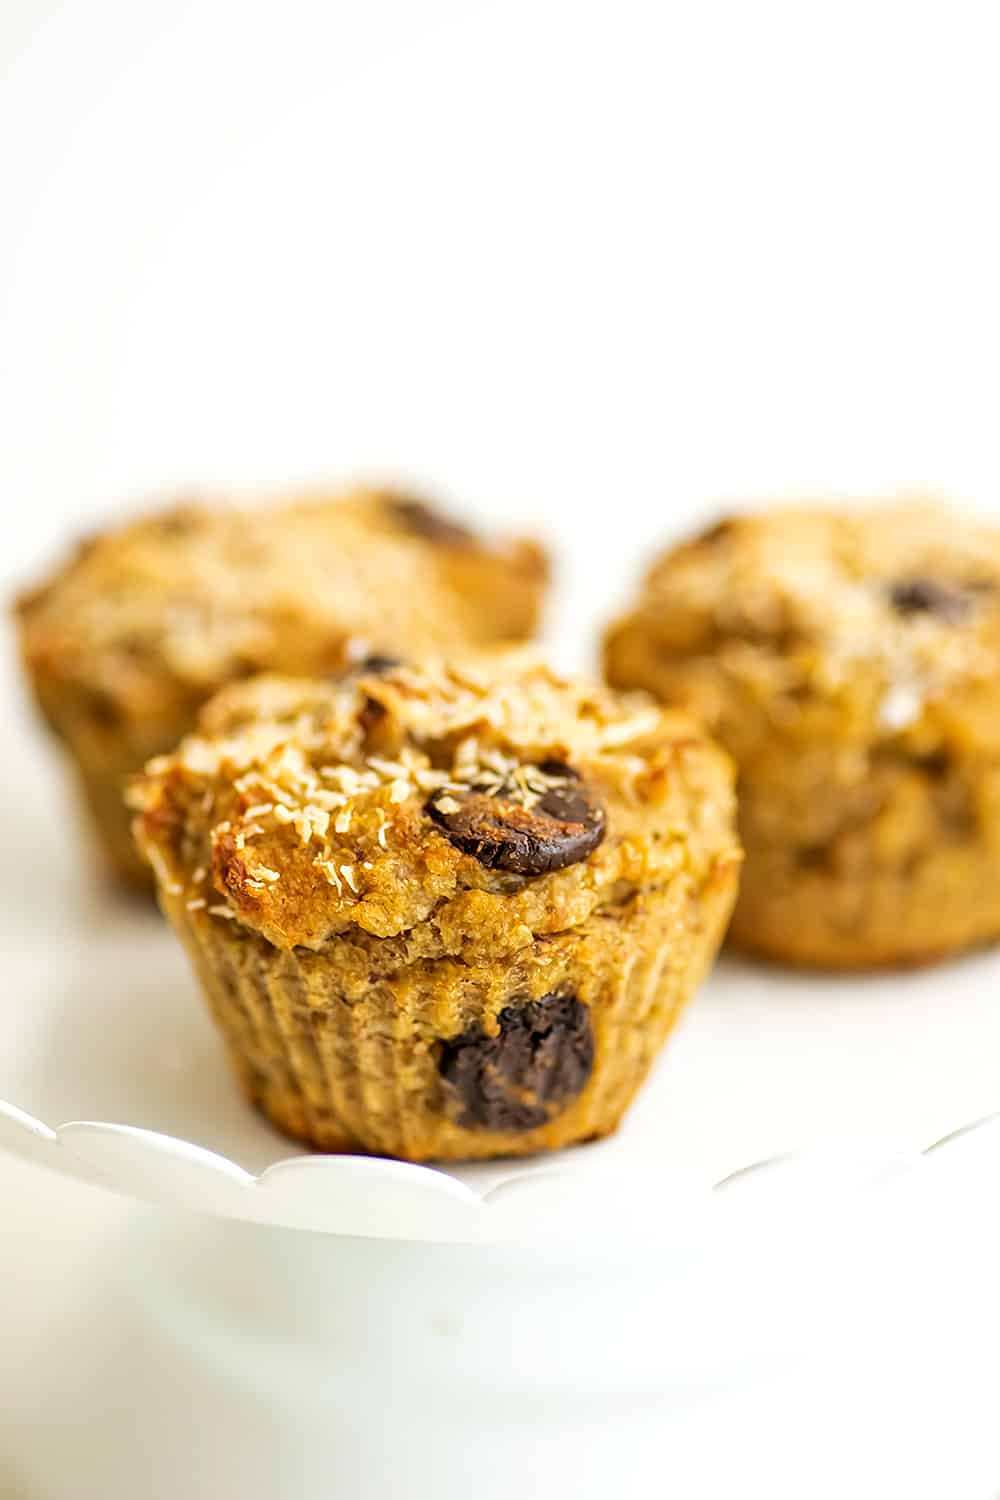 Quinoa banana muffins on a white serving tray.